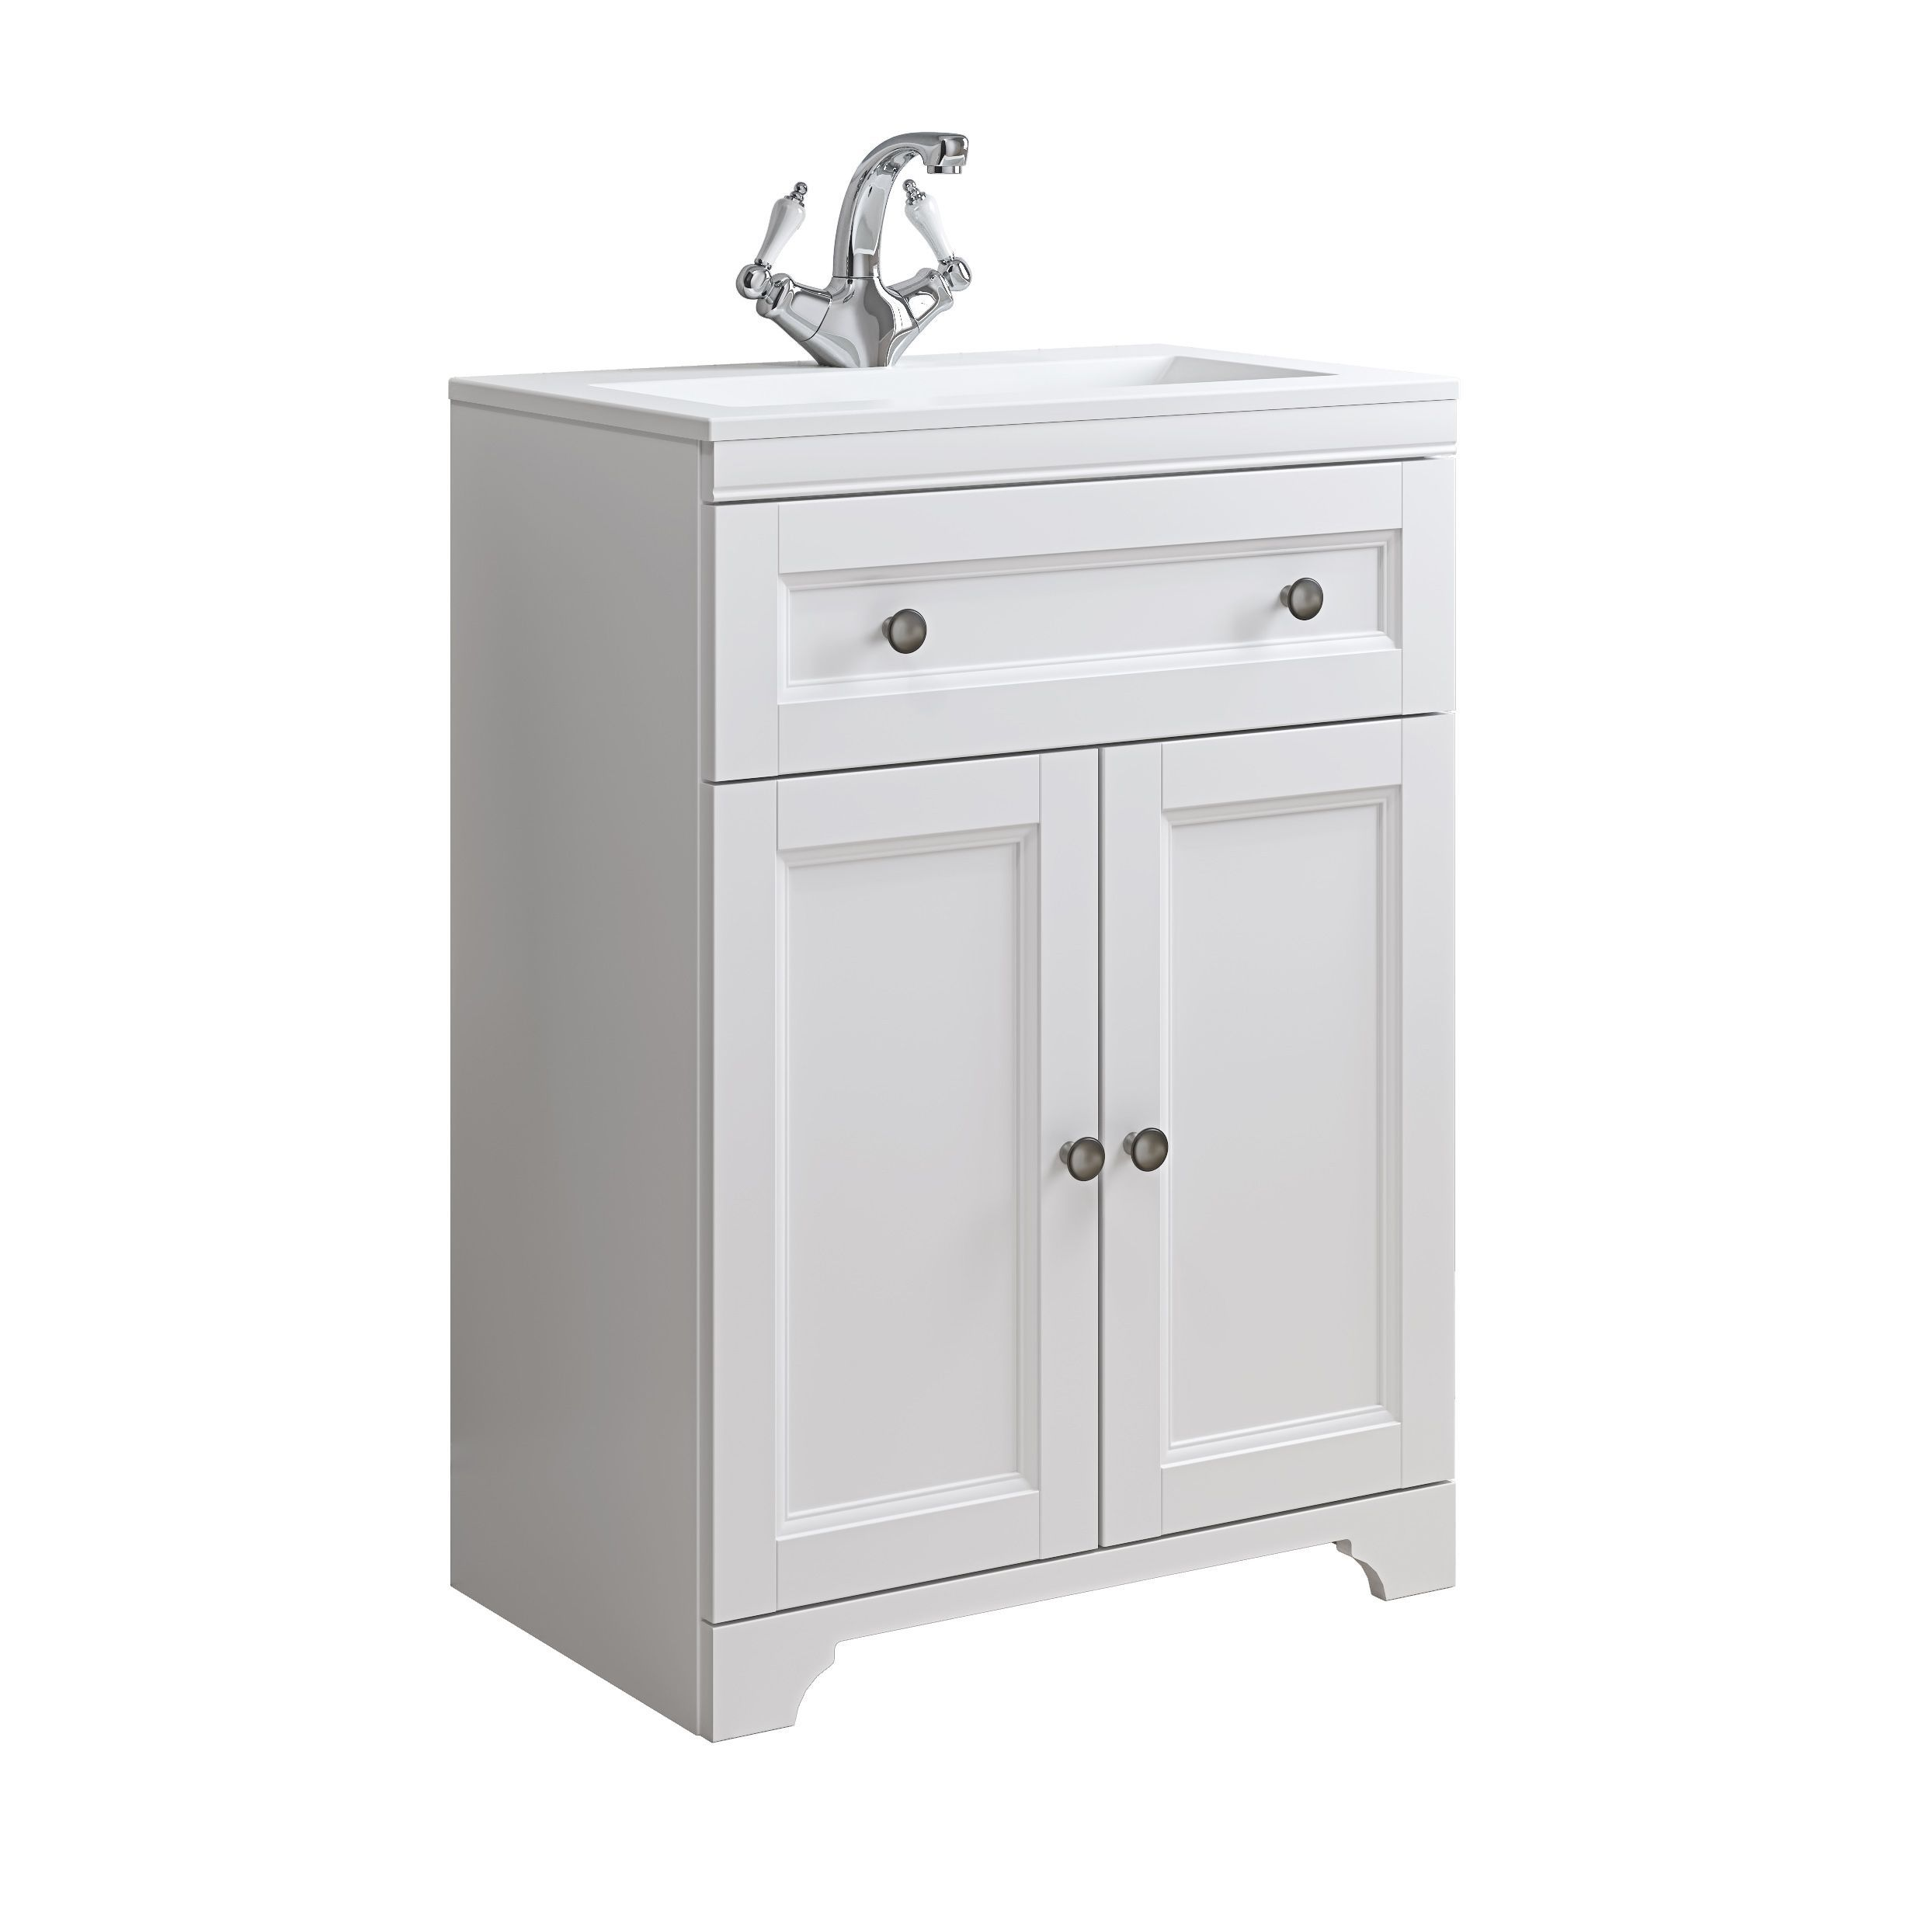 Cooke & Lewis Chadleigh Matt White Vanity unit & basin set ...